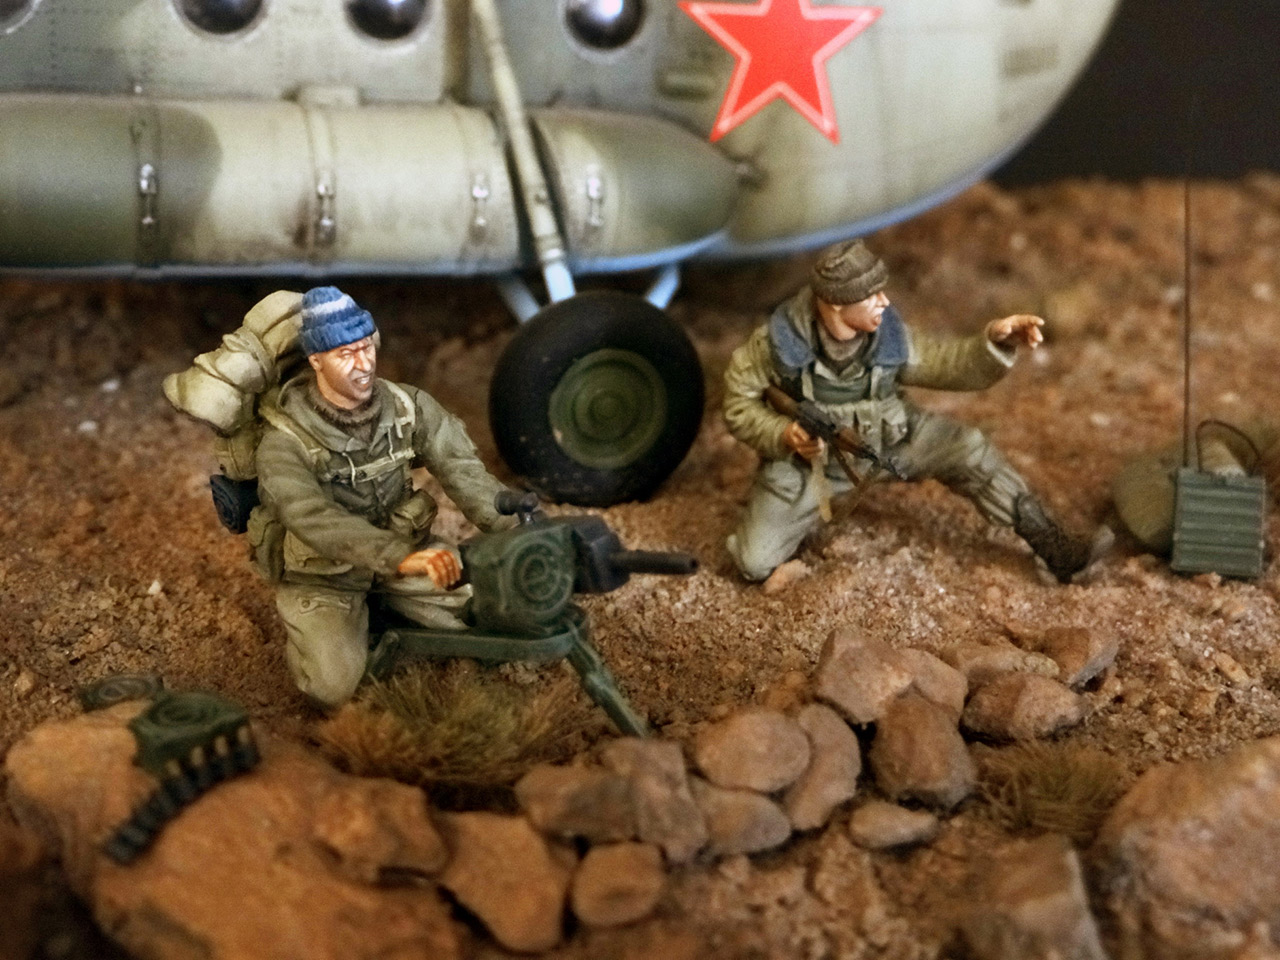 Dioramas and Vignettes: GRU special forces in Afghanistan, photo #16